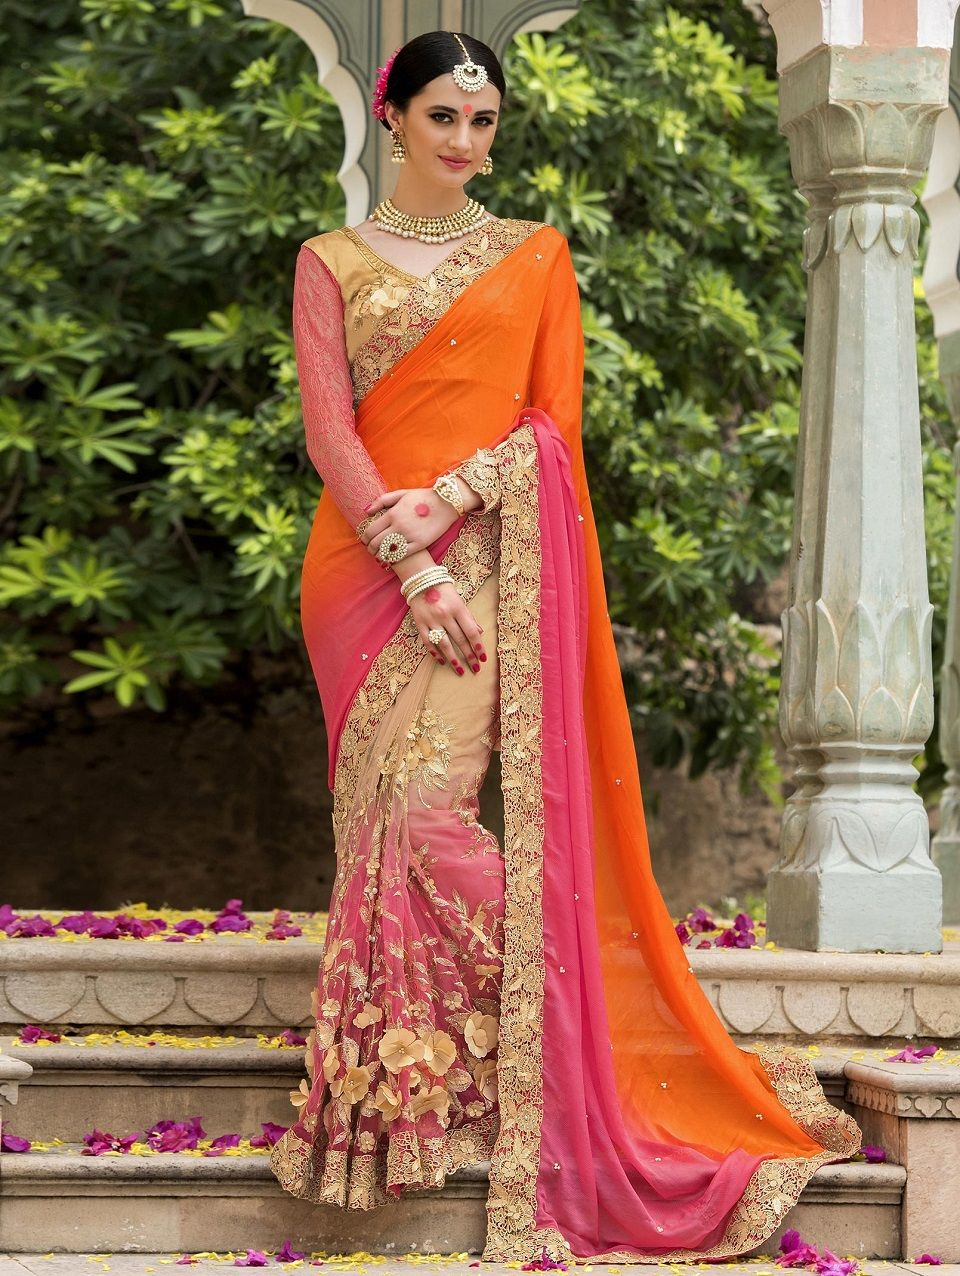 Indian Wedding Saree Latest Designs & Trends 20202021